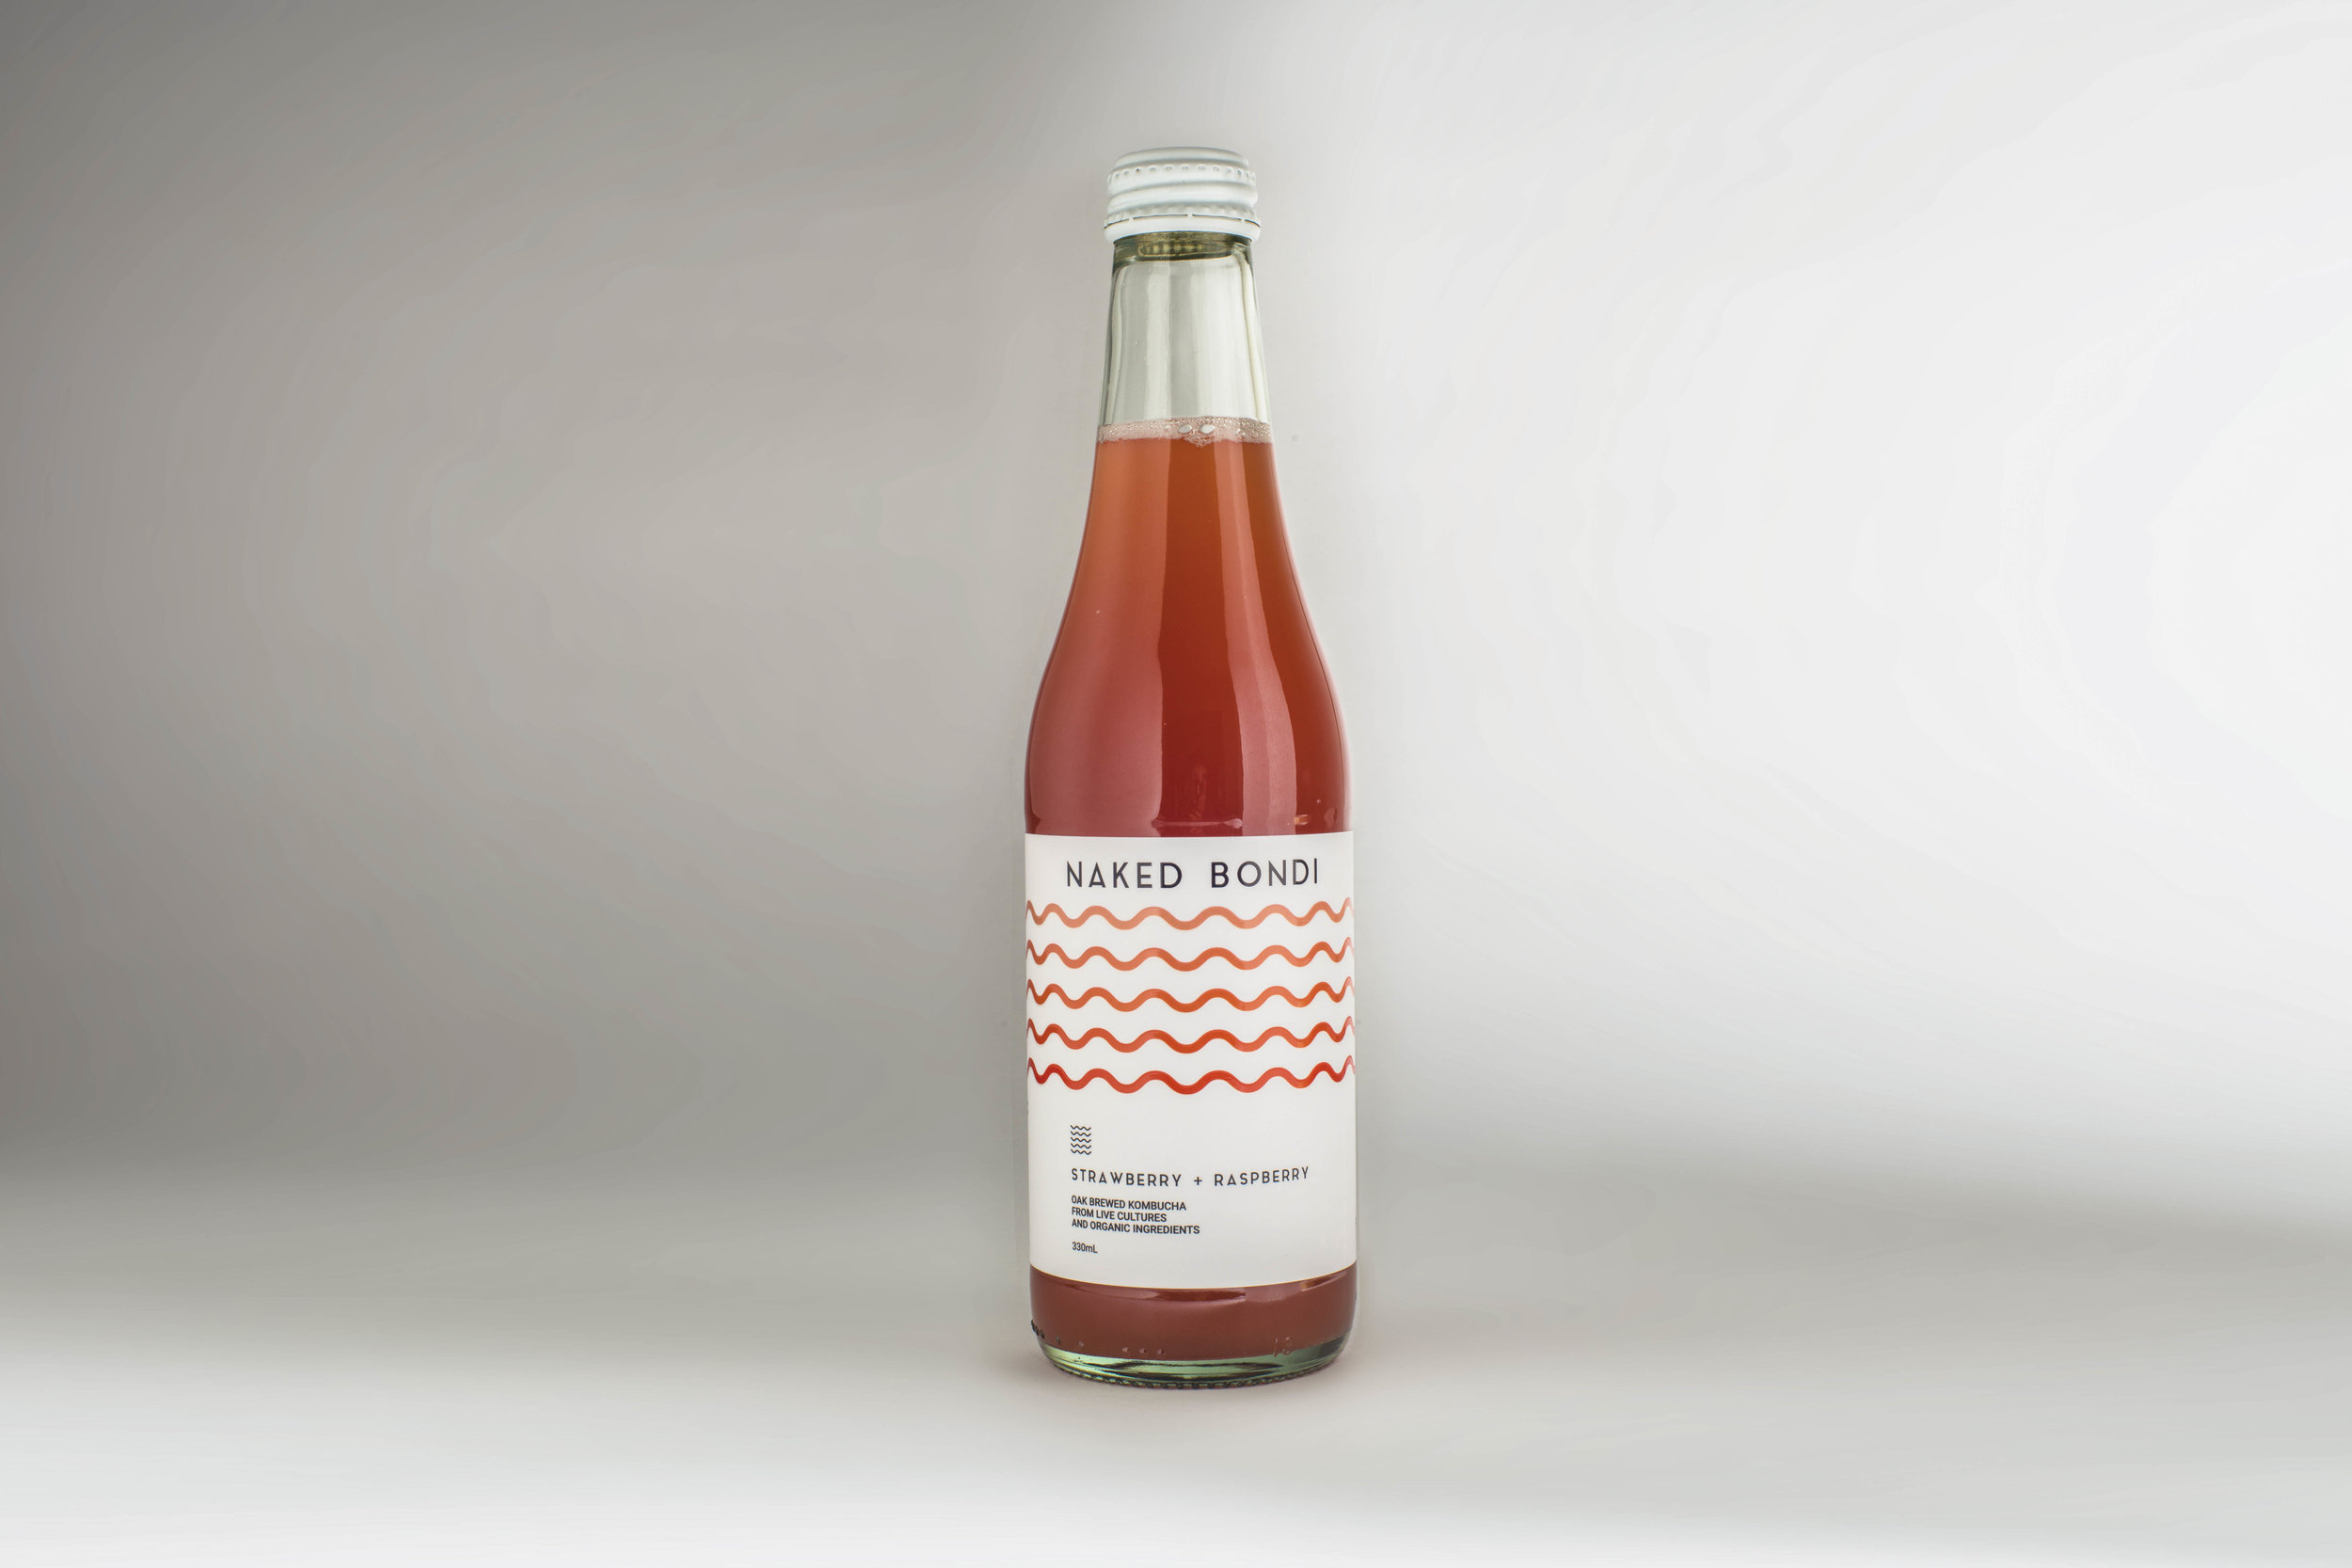 naked bondi kombucha strawberry raspberry.jpg